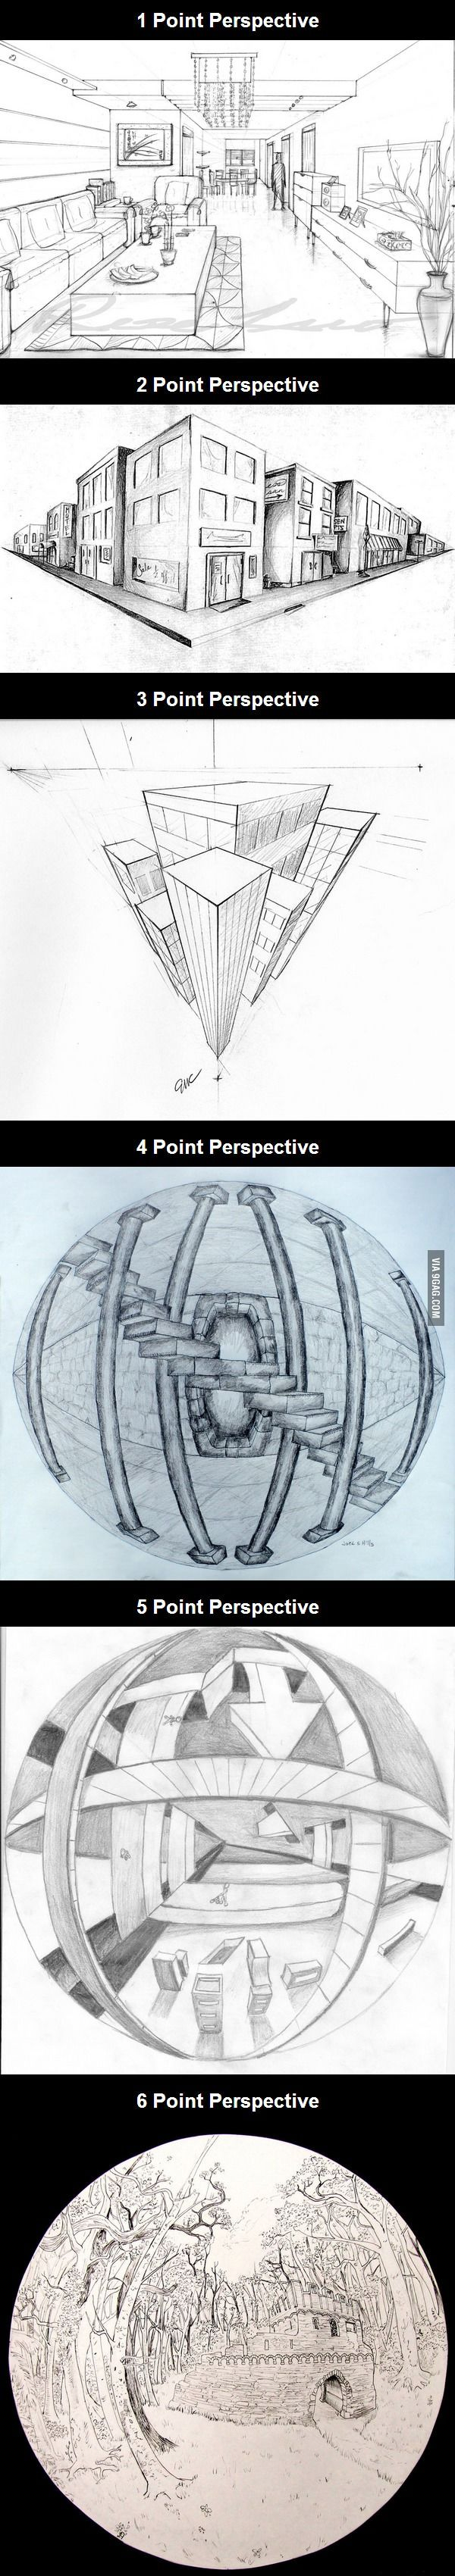 1 to 6 Point Perspective